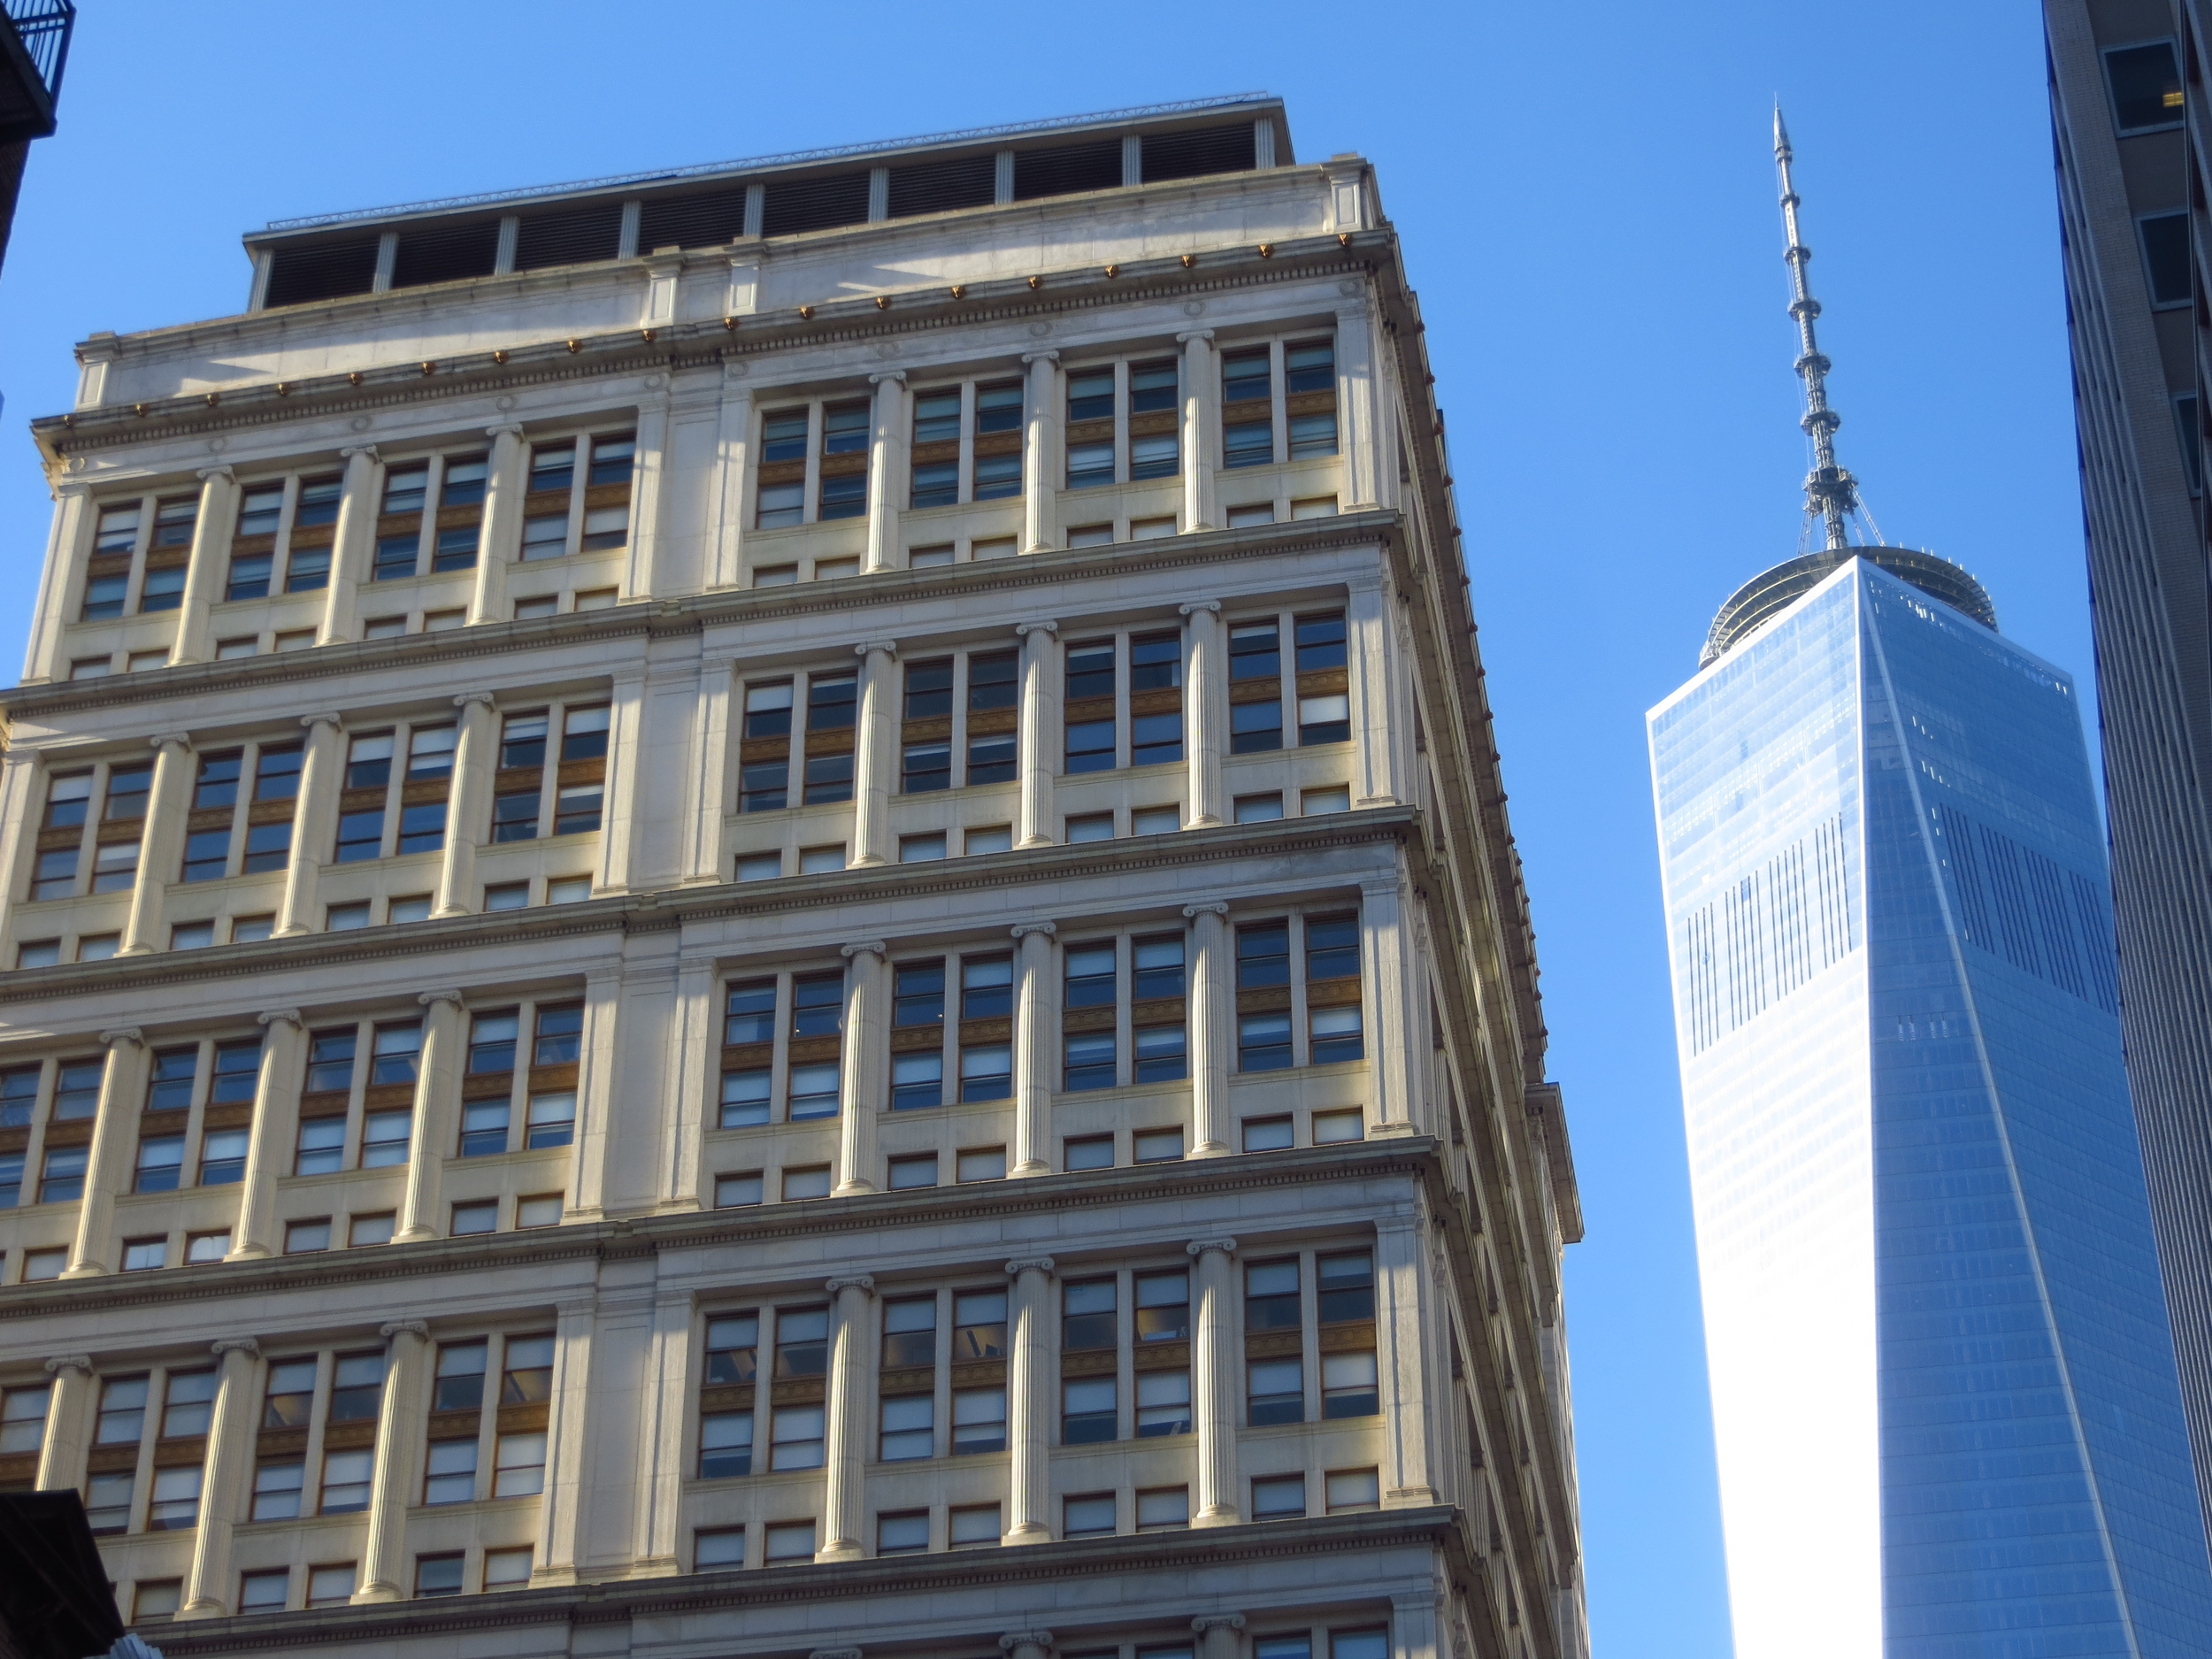 AT&T / Western Union Building and WTC1